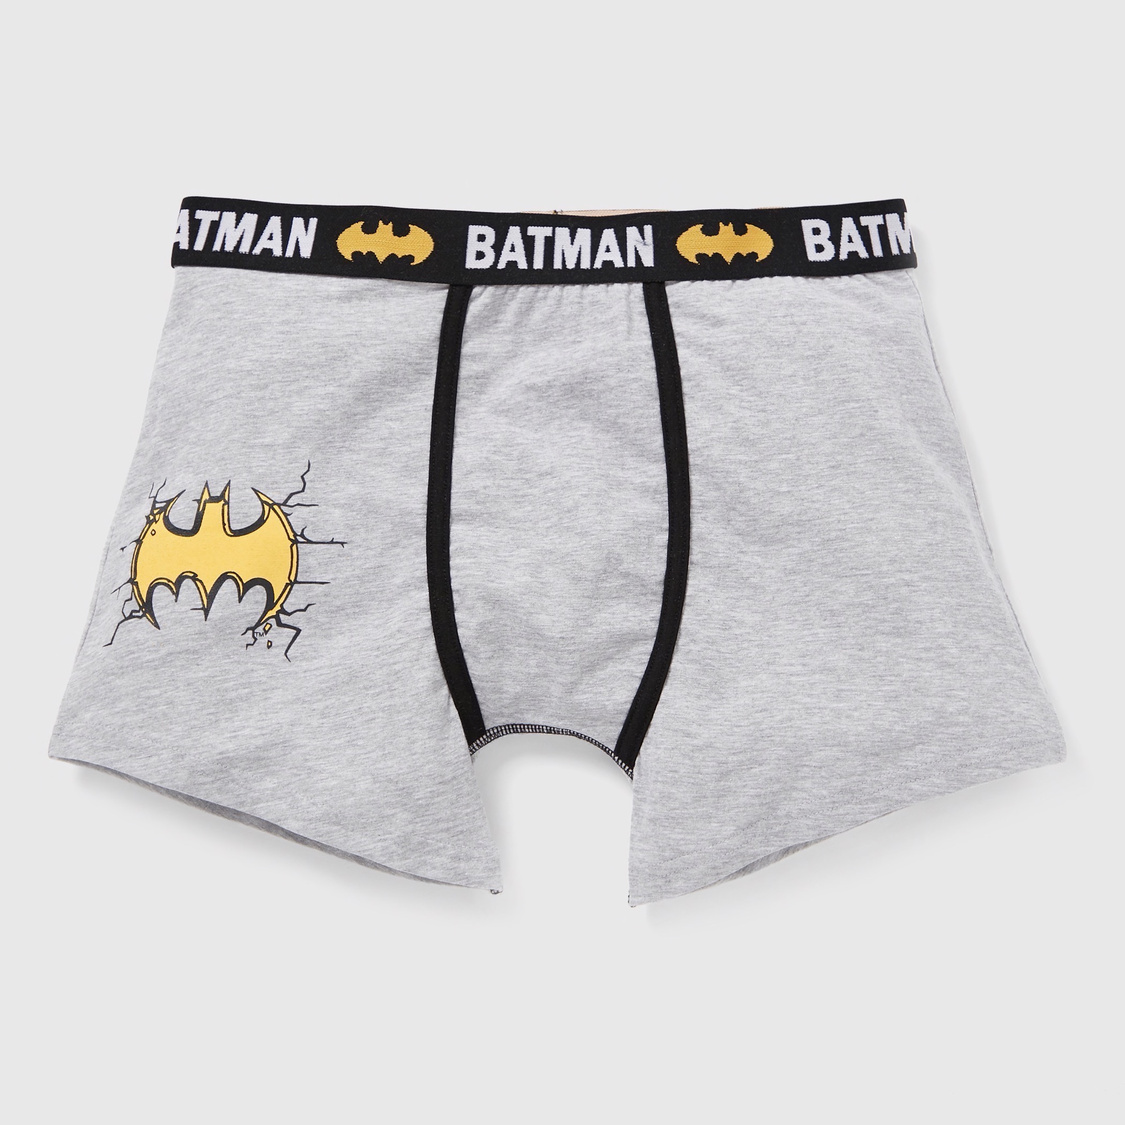 Pack of 2 - Batman Graphic Print Trunks with Elasticised Waistband